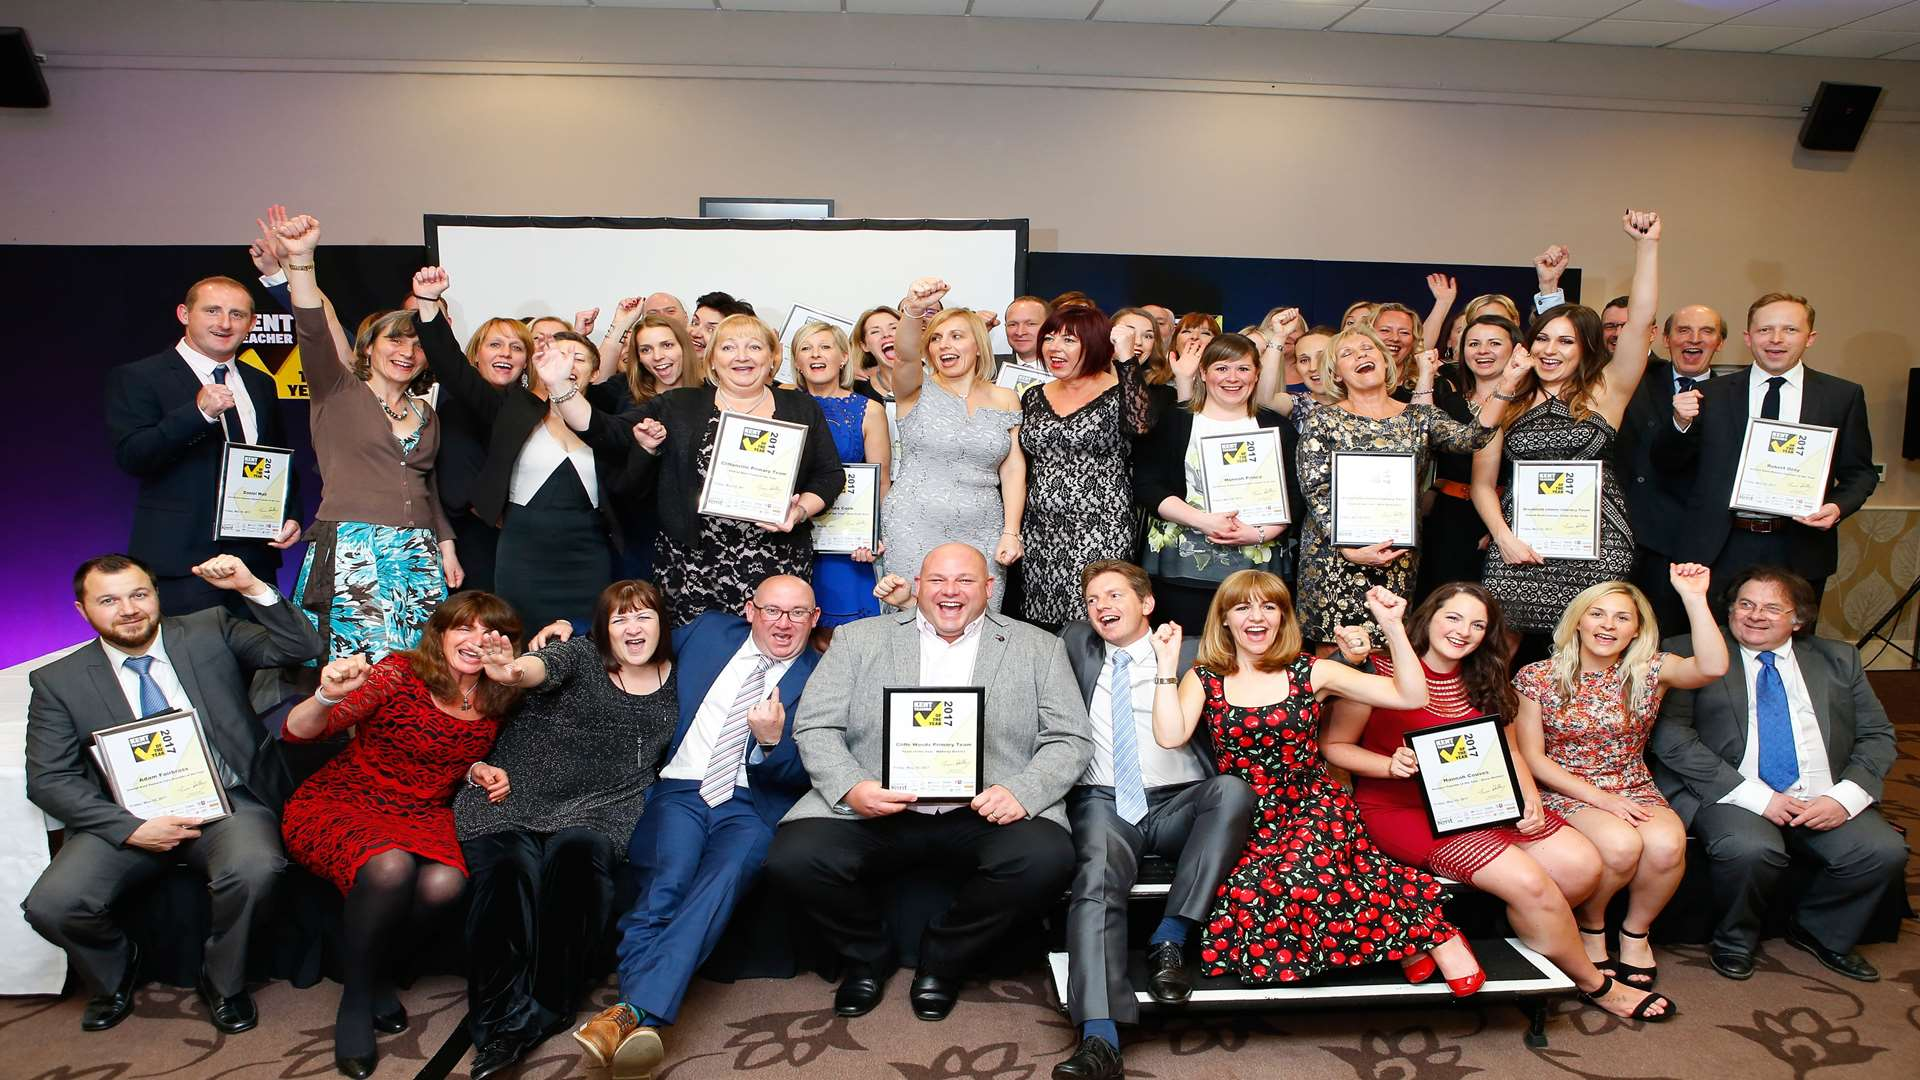 All winners and key partners of the Kent Teacher of the Year Awards 2017 at Mercure Great Danes Hotel, Ashford.